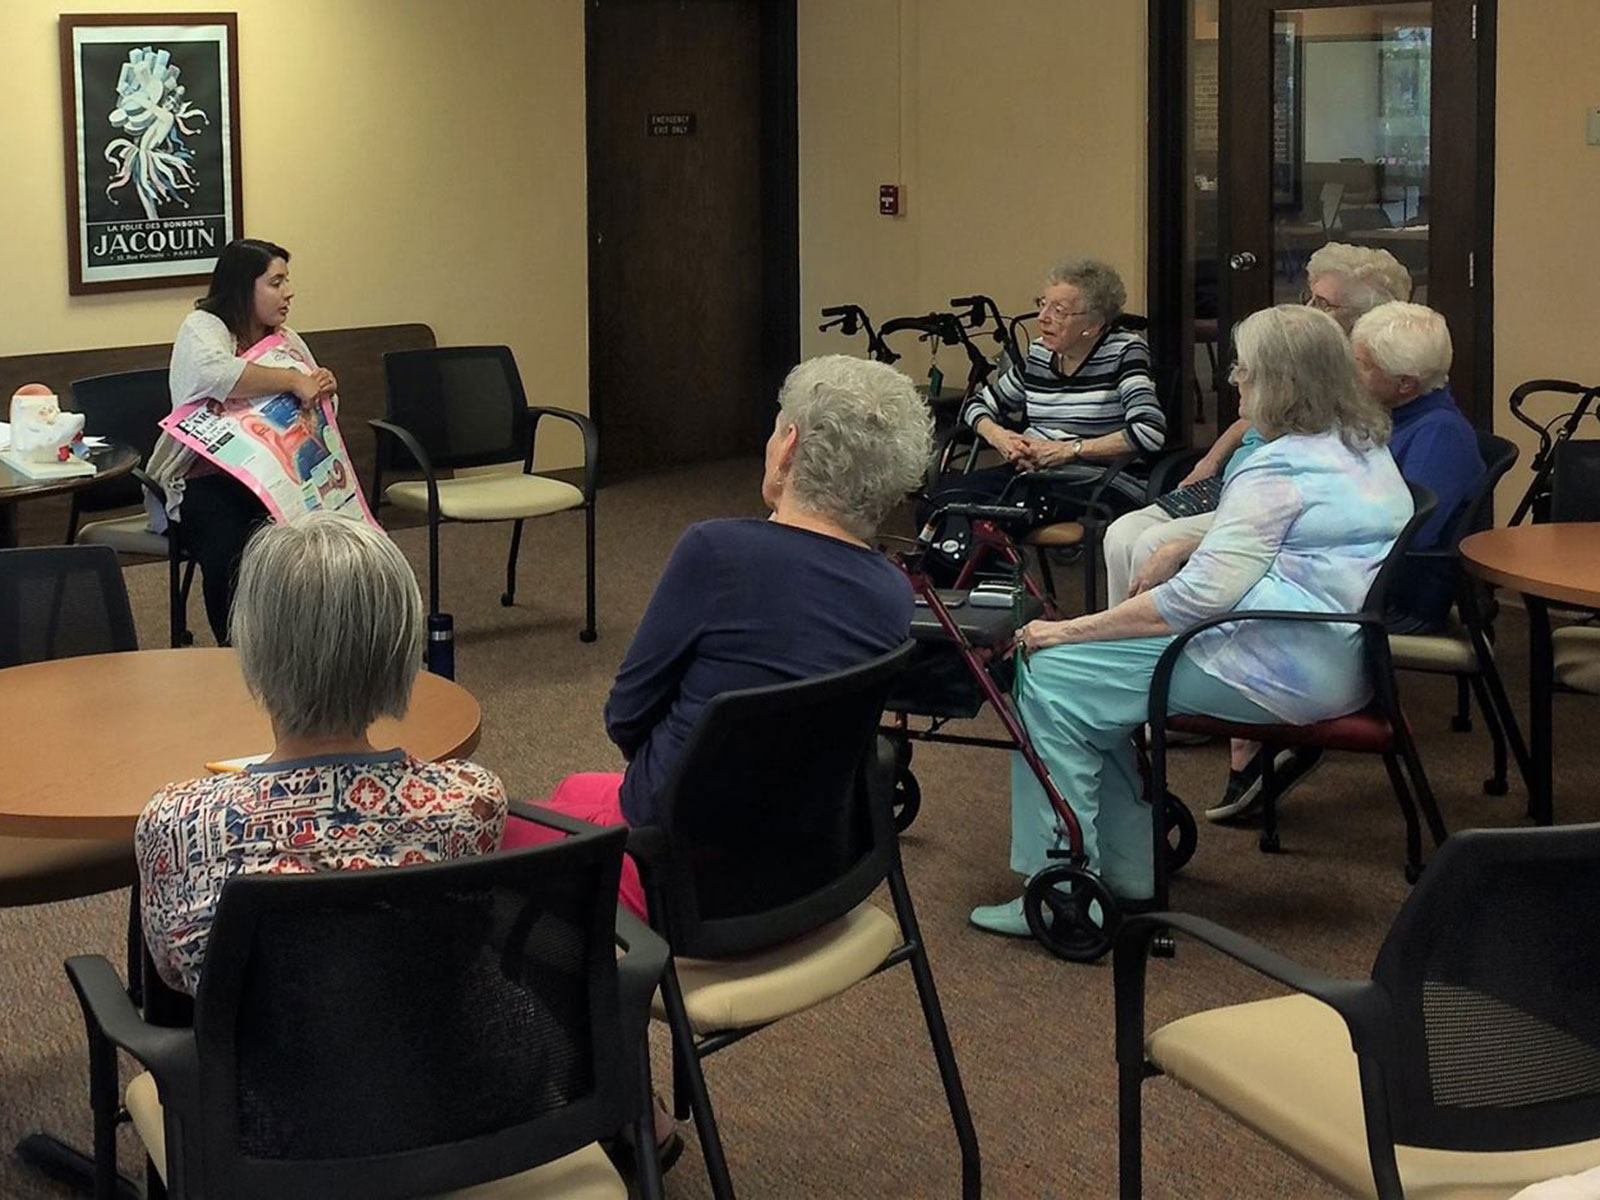 An Au.D. student presents information on hearing and hearing loss to members of a local retirement community.